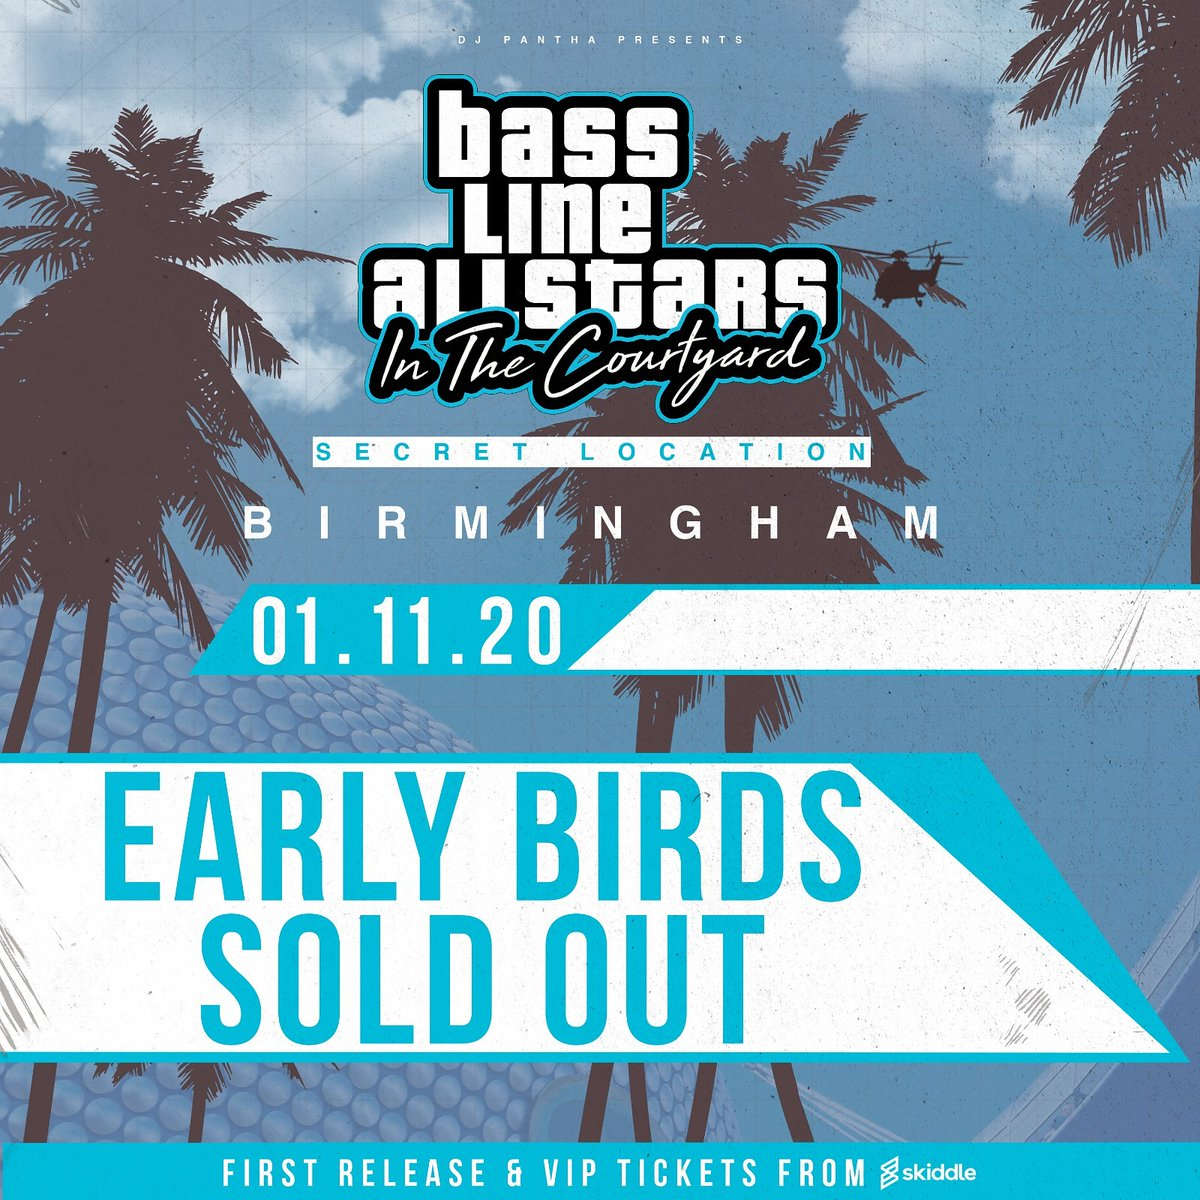 EARLY BIRDS SOLD OUT IN 24HRS ❤️❤️